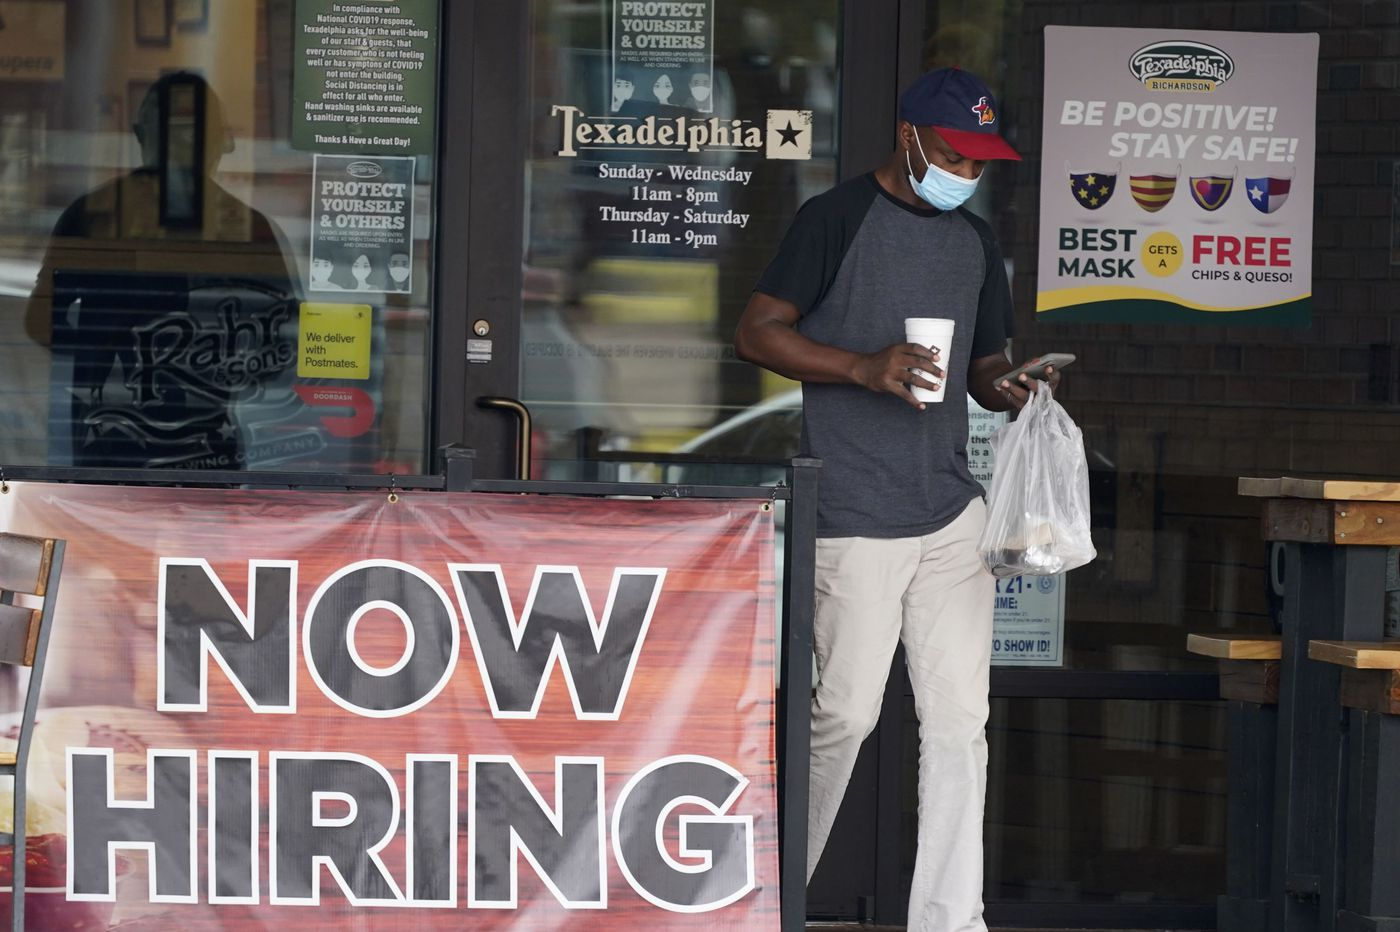 U.S. jobs rose less than forecast in September as economic rebound downshifted